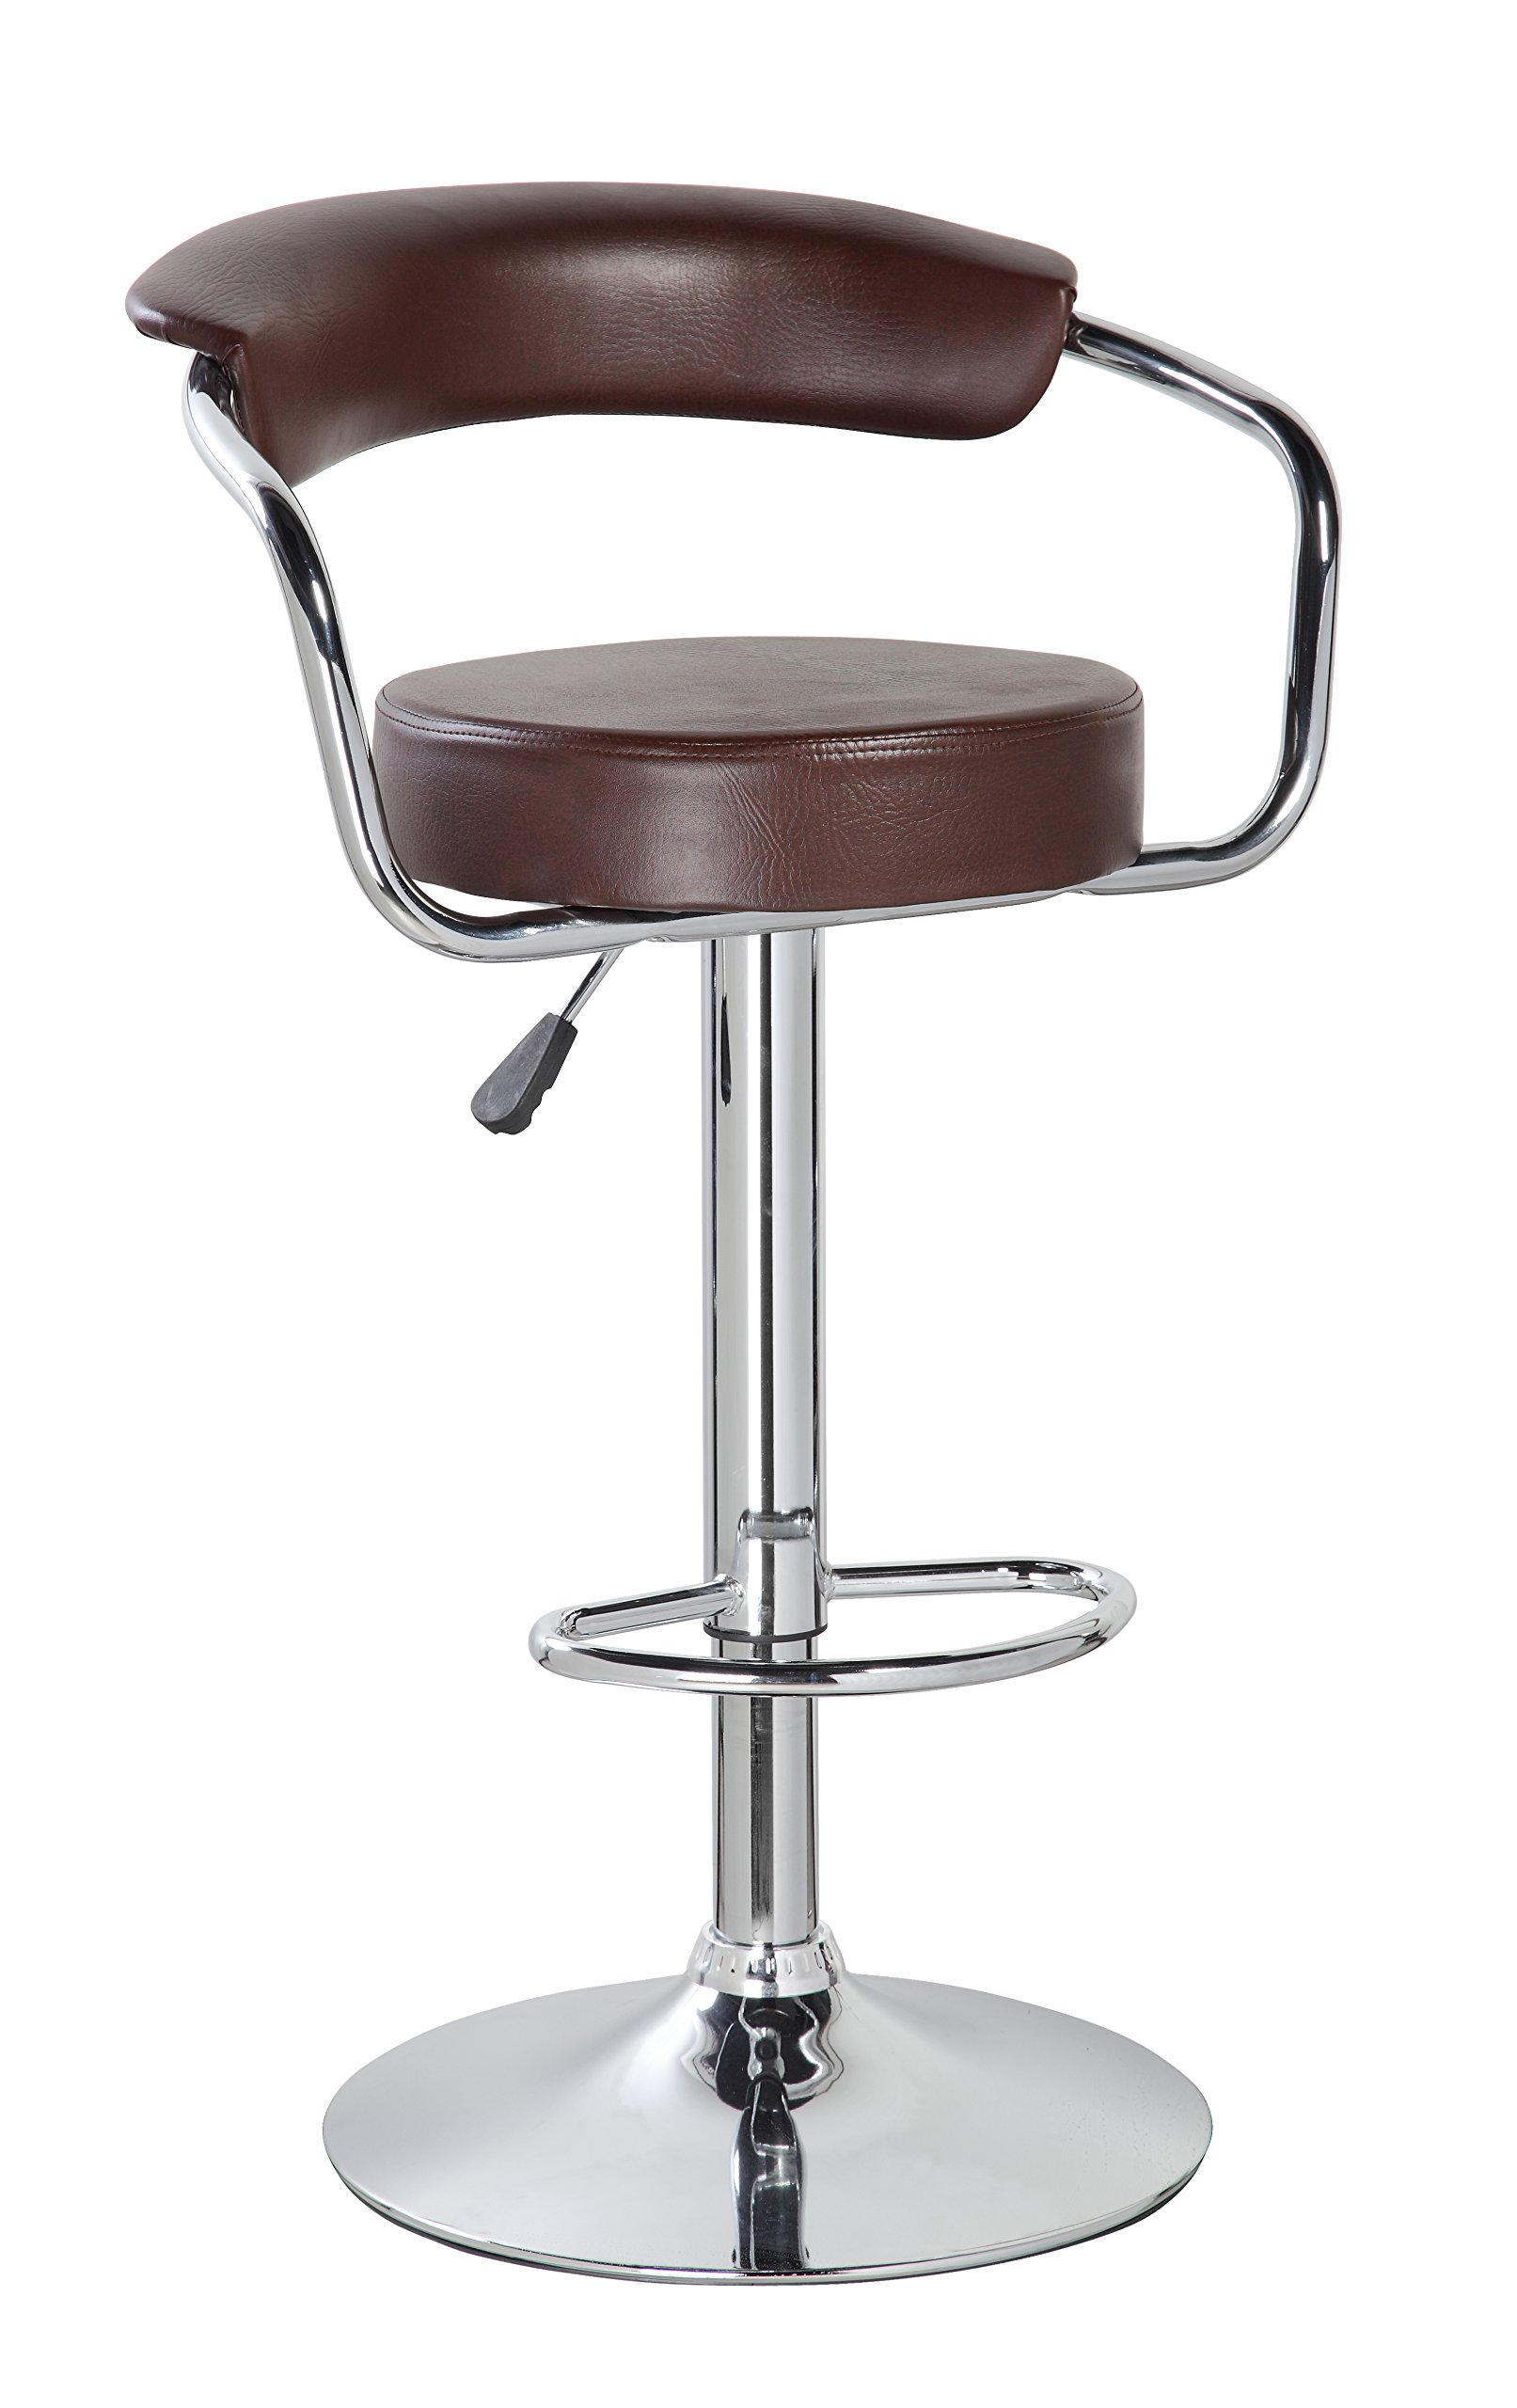 United Seating Mid back classic adjustable height armless bar stool, Mocha Brown